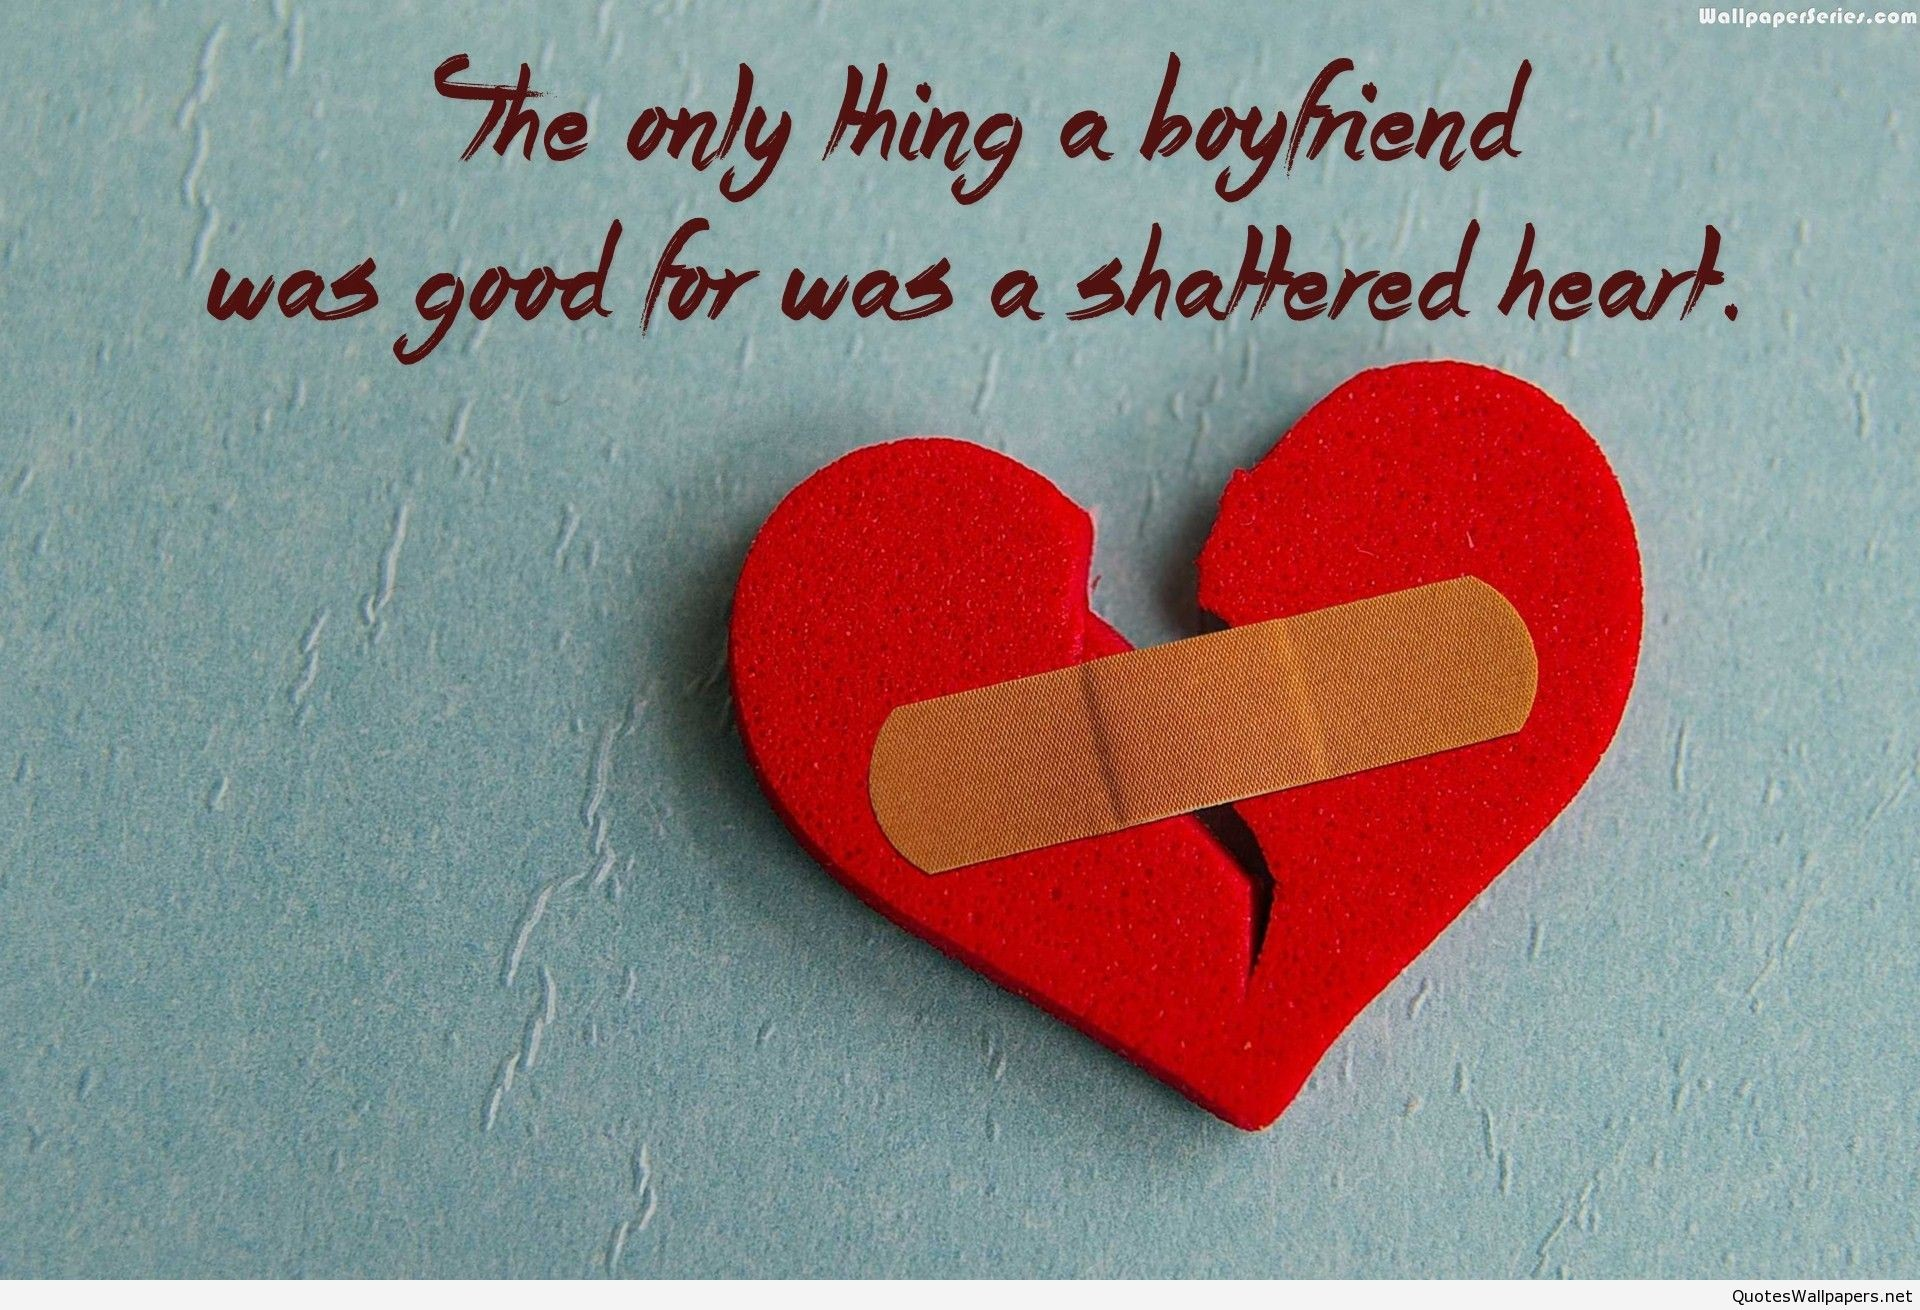 Broken heart sad quotes with wallpapers, images hd Broken Heart Pic Wallpapers  Wallpapers)